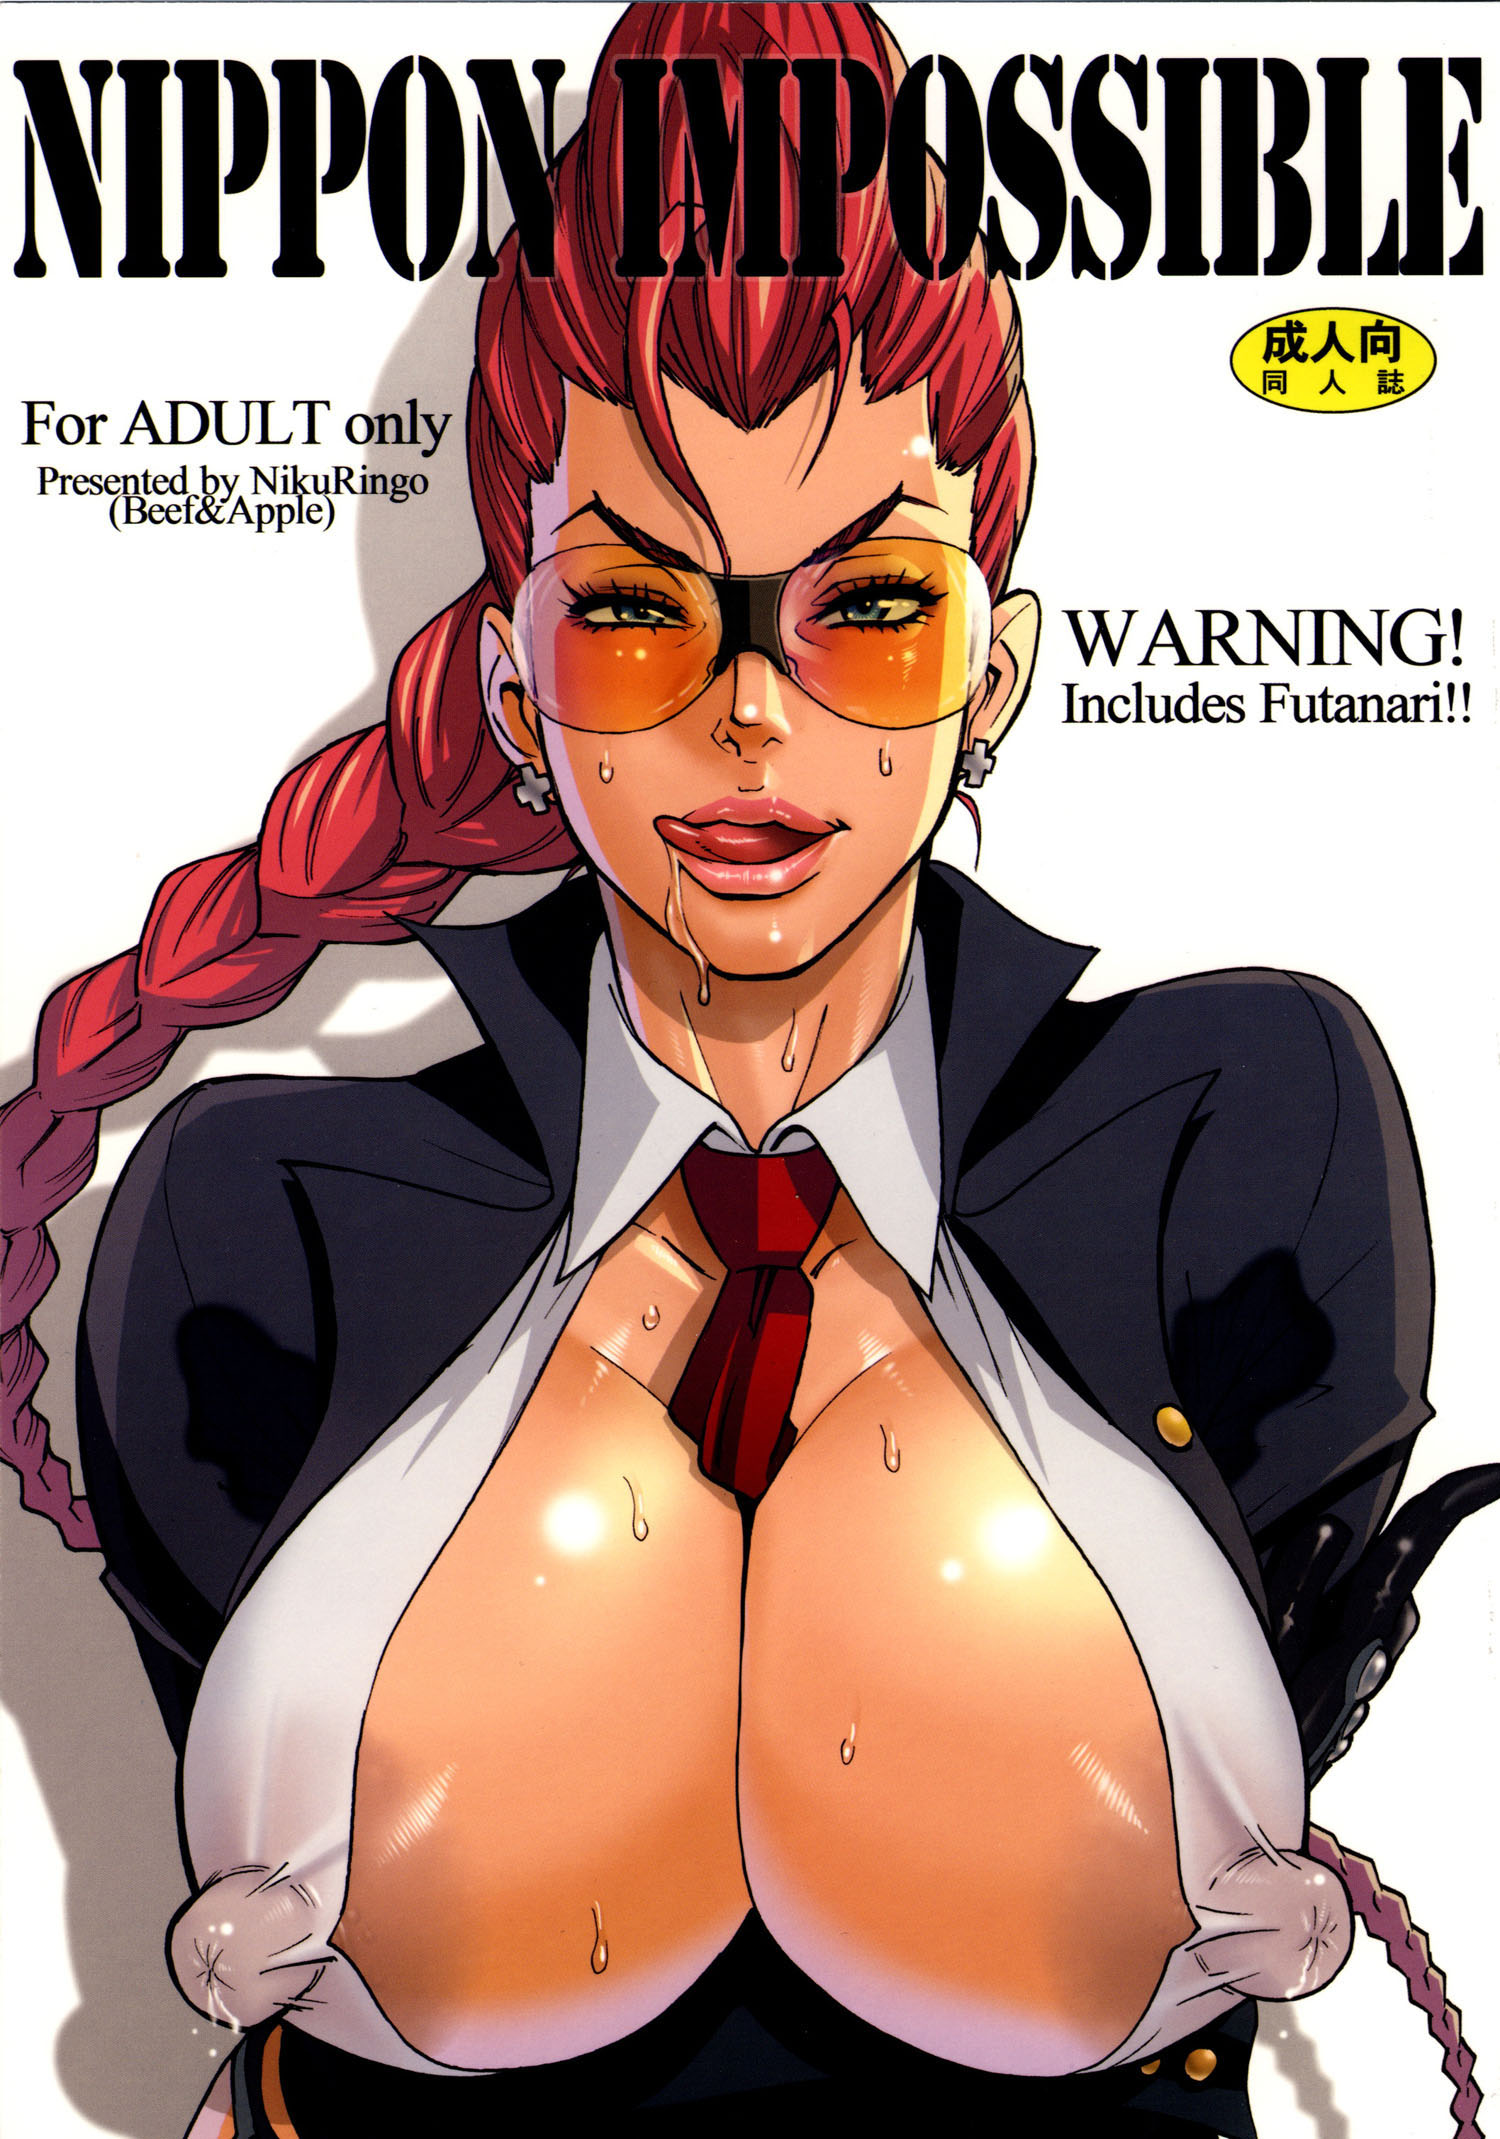 Images Tagged With Viper Hentai Manga Doujinshi Xxx